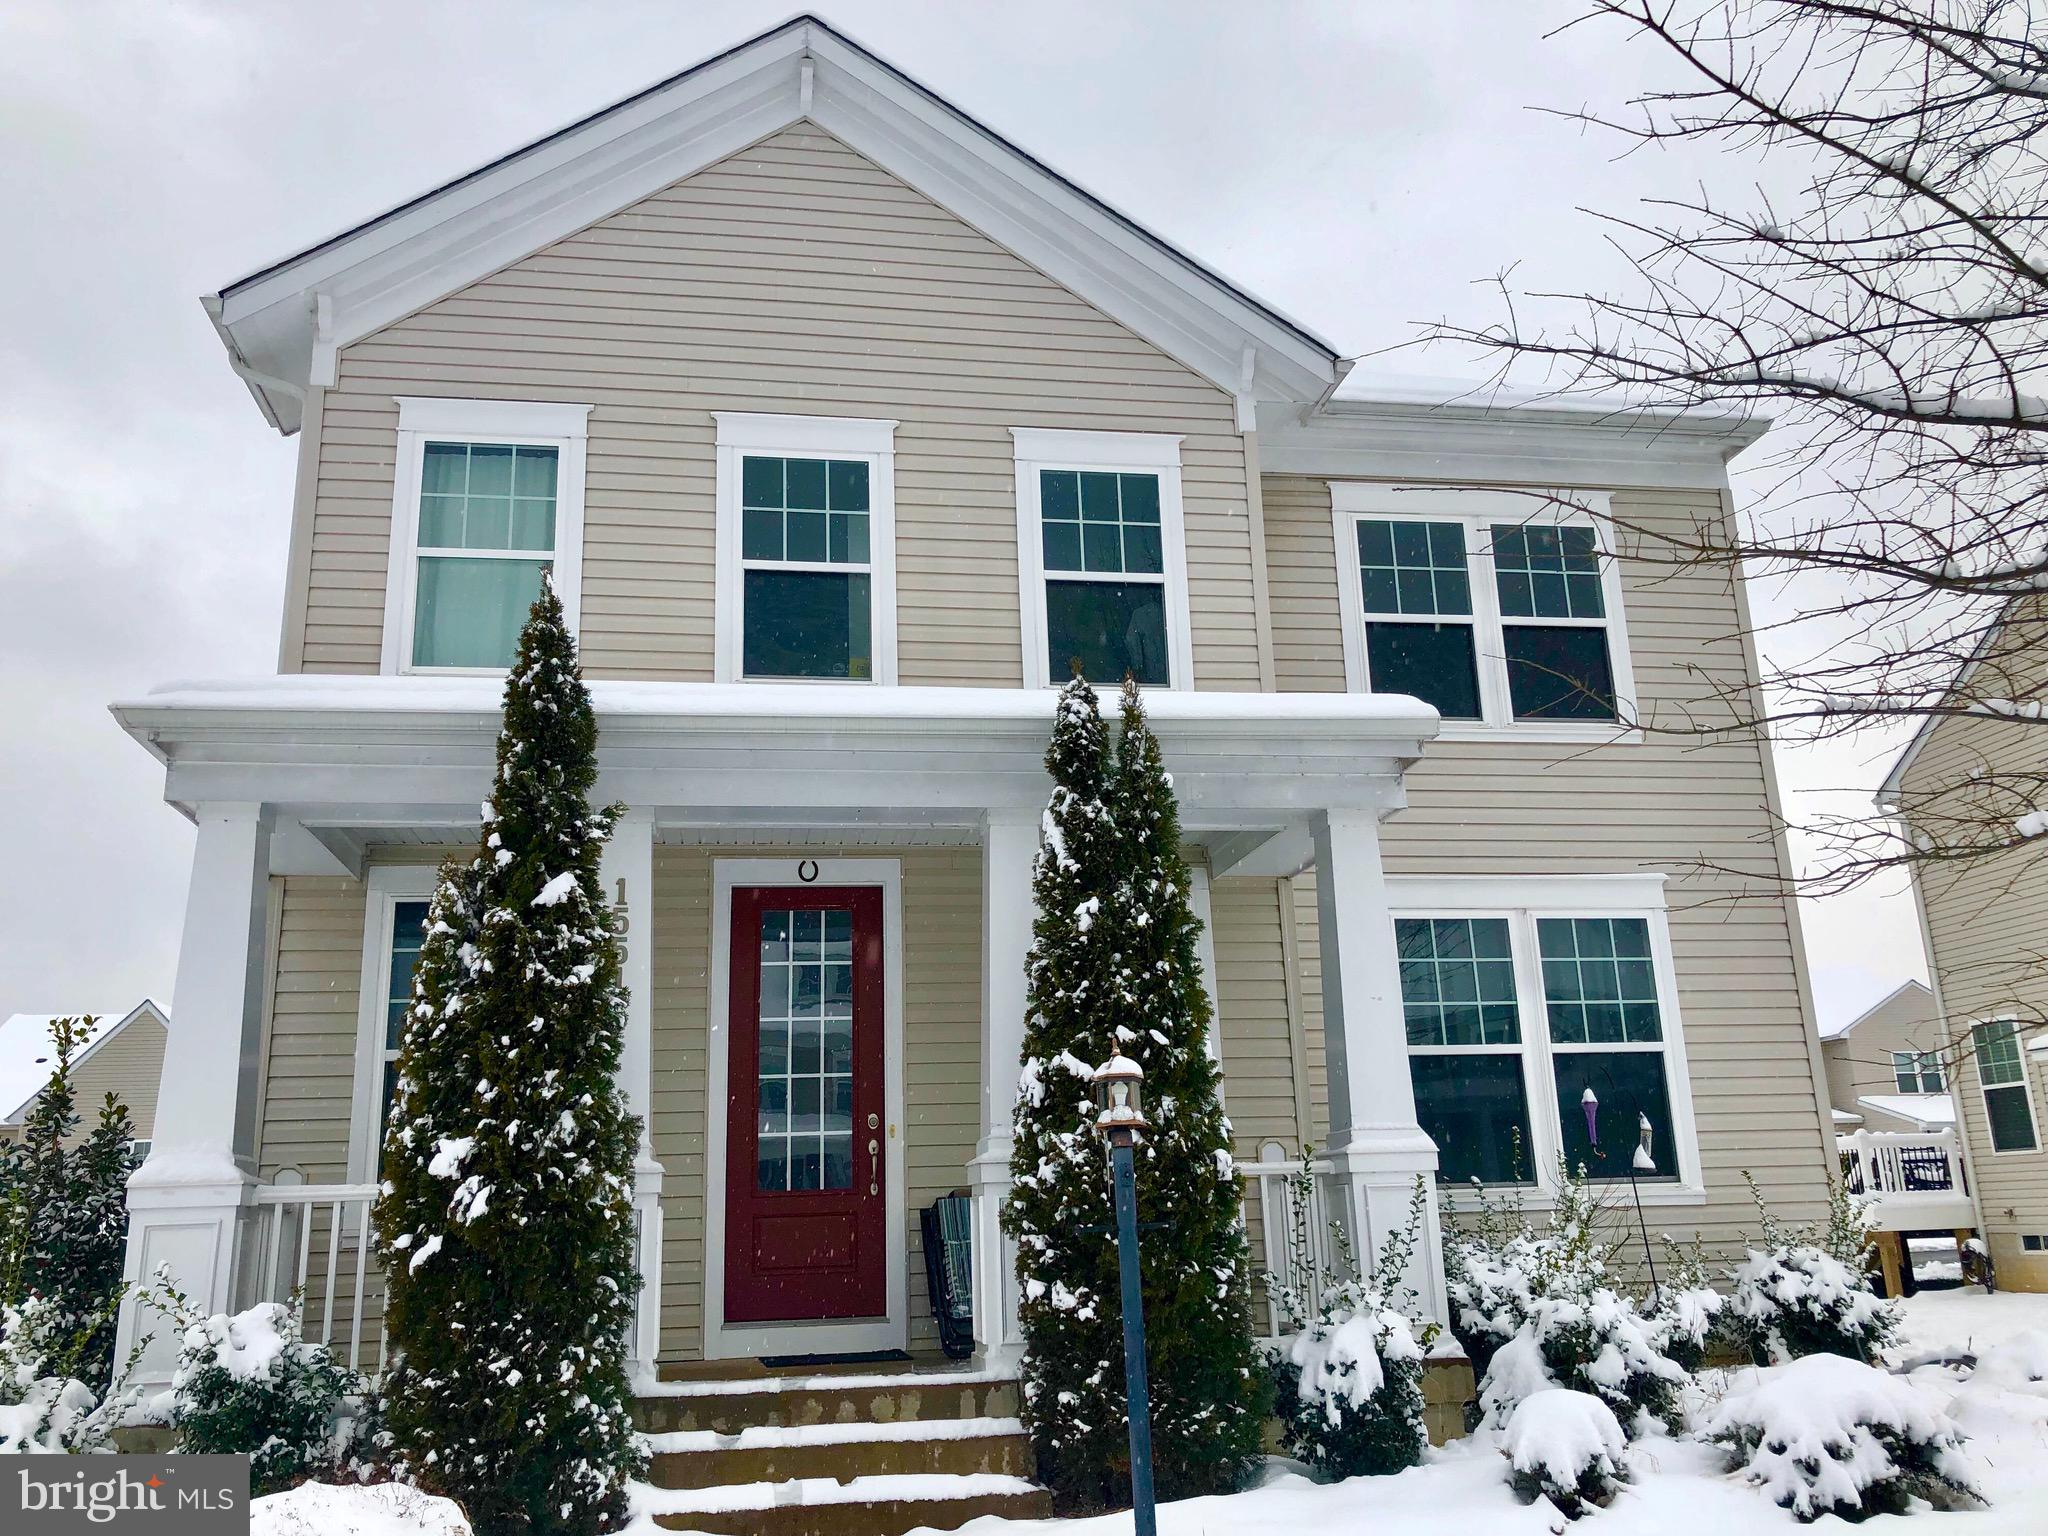 Hope Hill is a picturesque community in Prince William County that offers wonderful amenities. A 22 acre community park, walking trails, pool and clubhouse. Zoned for the highly sought after Colgan H.S. and Wilson Elementary school. The Embrey home welcomes you with a front porch that walks you into a open floor plan, kitchen with tray ceiling, granite counters, island bar. Get cozy in the connecting room with a fireplace in the family room. Upper floor has Master bedroom suite with tray ceiling, enormous dual walk-in closets and luxury bathroom with dual vanities. Impressive en-suite bathroom in the guest room , extra large laundry room  adjacent to other bedrooms. Huge walk out basement with full bath and optional theater room. The backyard is fenced and has a deck for outdoor grilling. Near major commuter lots and shopping.